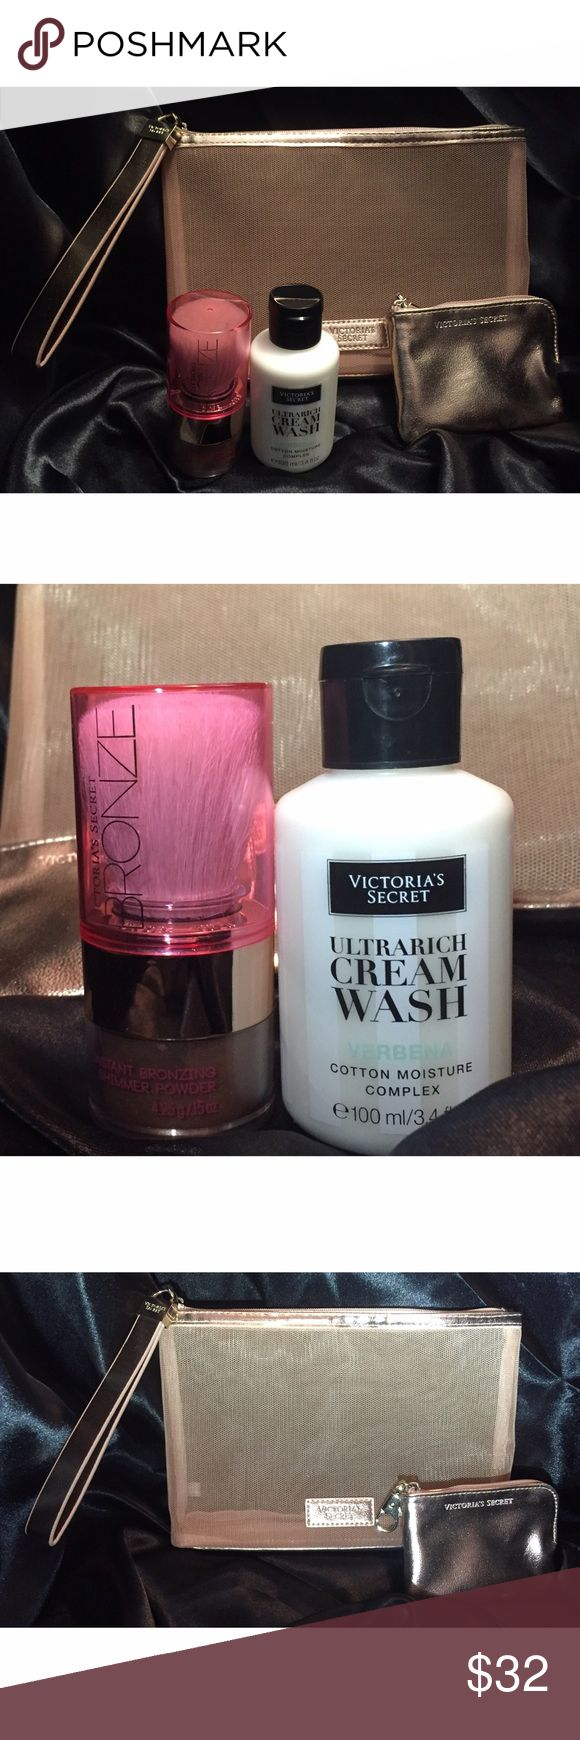 Victoria's Secret Bronzed & Beautiful Bundle Perfect for Valentine's Day! Includes: Large Zippered Cosmetic Bag, Small Gold Glitz Coin Purse, Instant Bronzing Shimmer Powder & Brush Set, & Travel Ultrarich Cream Wash in Verbena. All Brand New! Victoria's Secret Makeup Bronzer